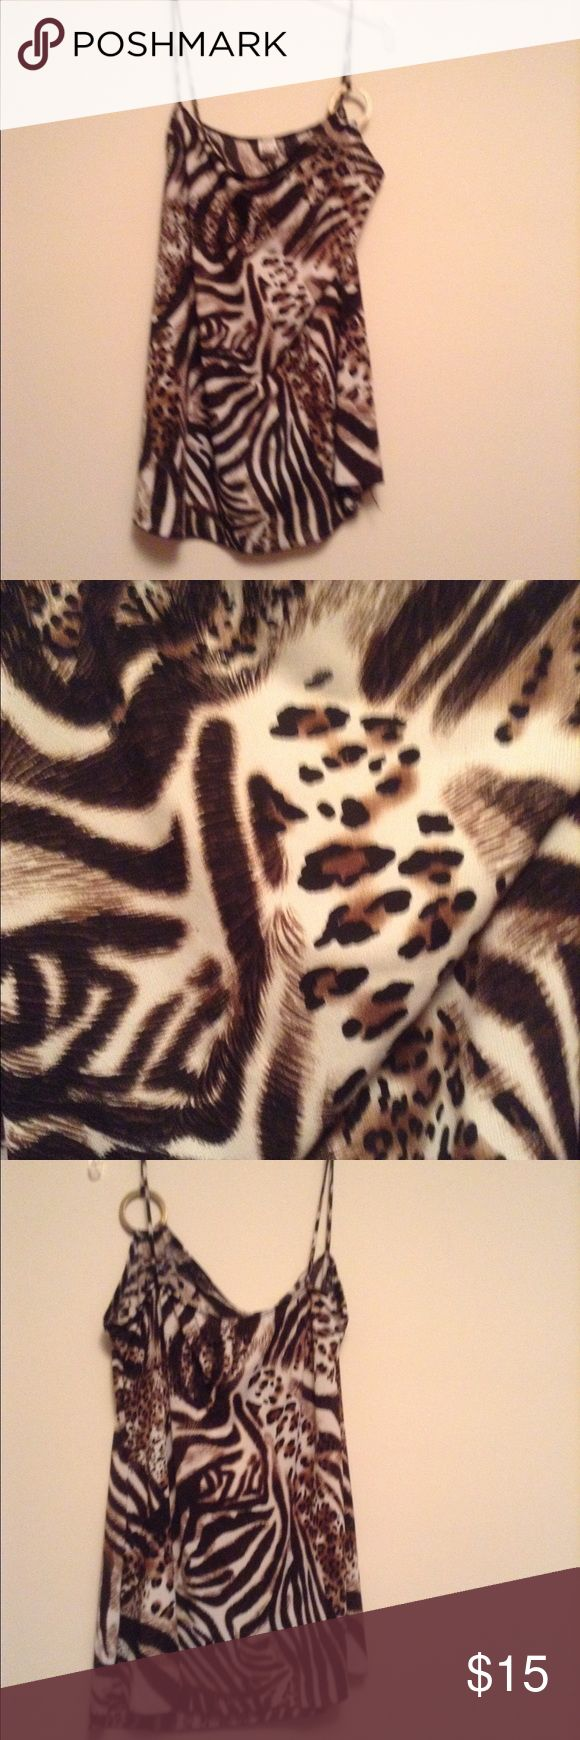 Strappy Animal Print Top This slinky animal print top is perfect for a casual night out. Tops Camisoles